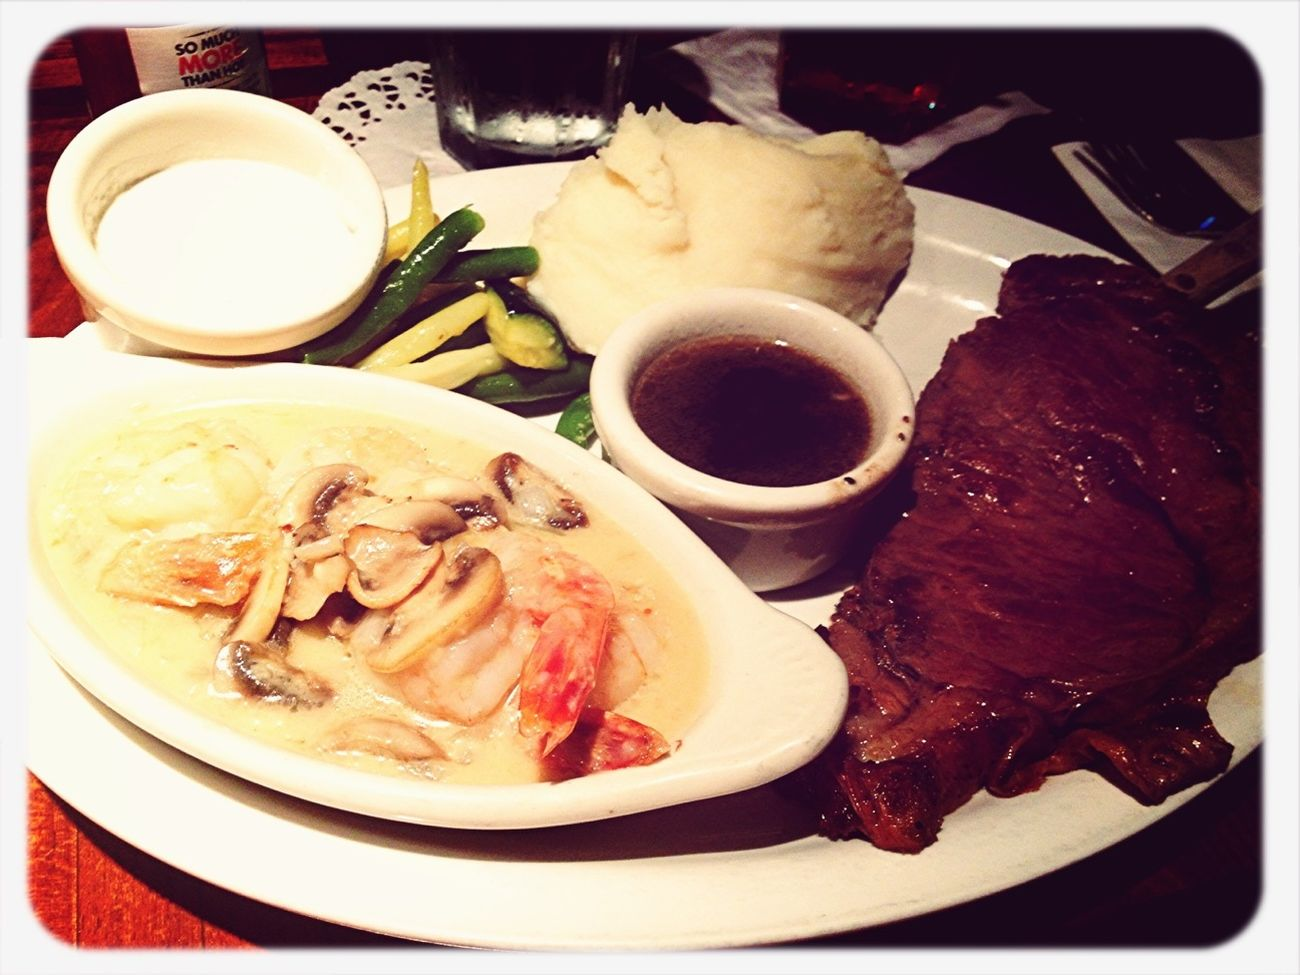 Dinner with my lovey mom tonight. Prime rib yummmy so good